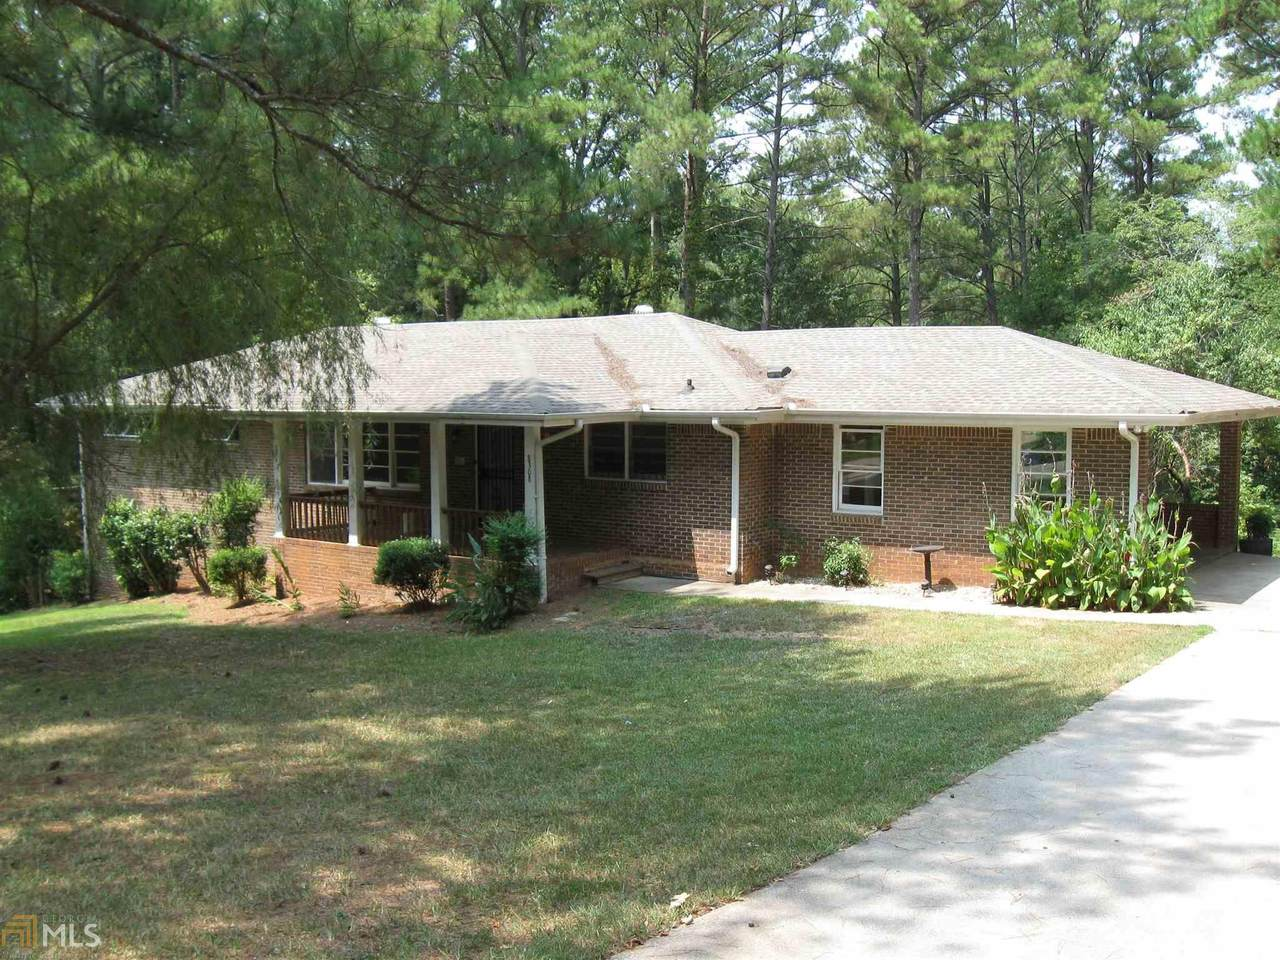 8308 Lakeview Dr - Photo 1